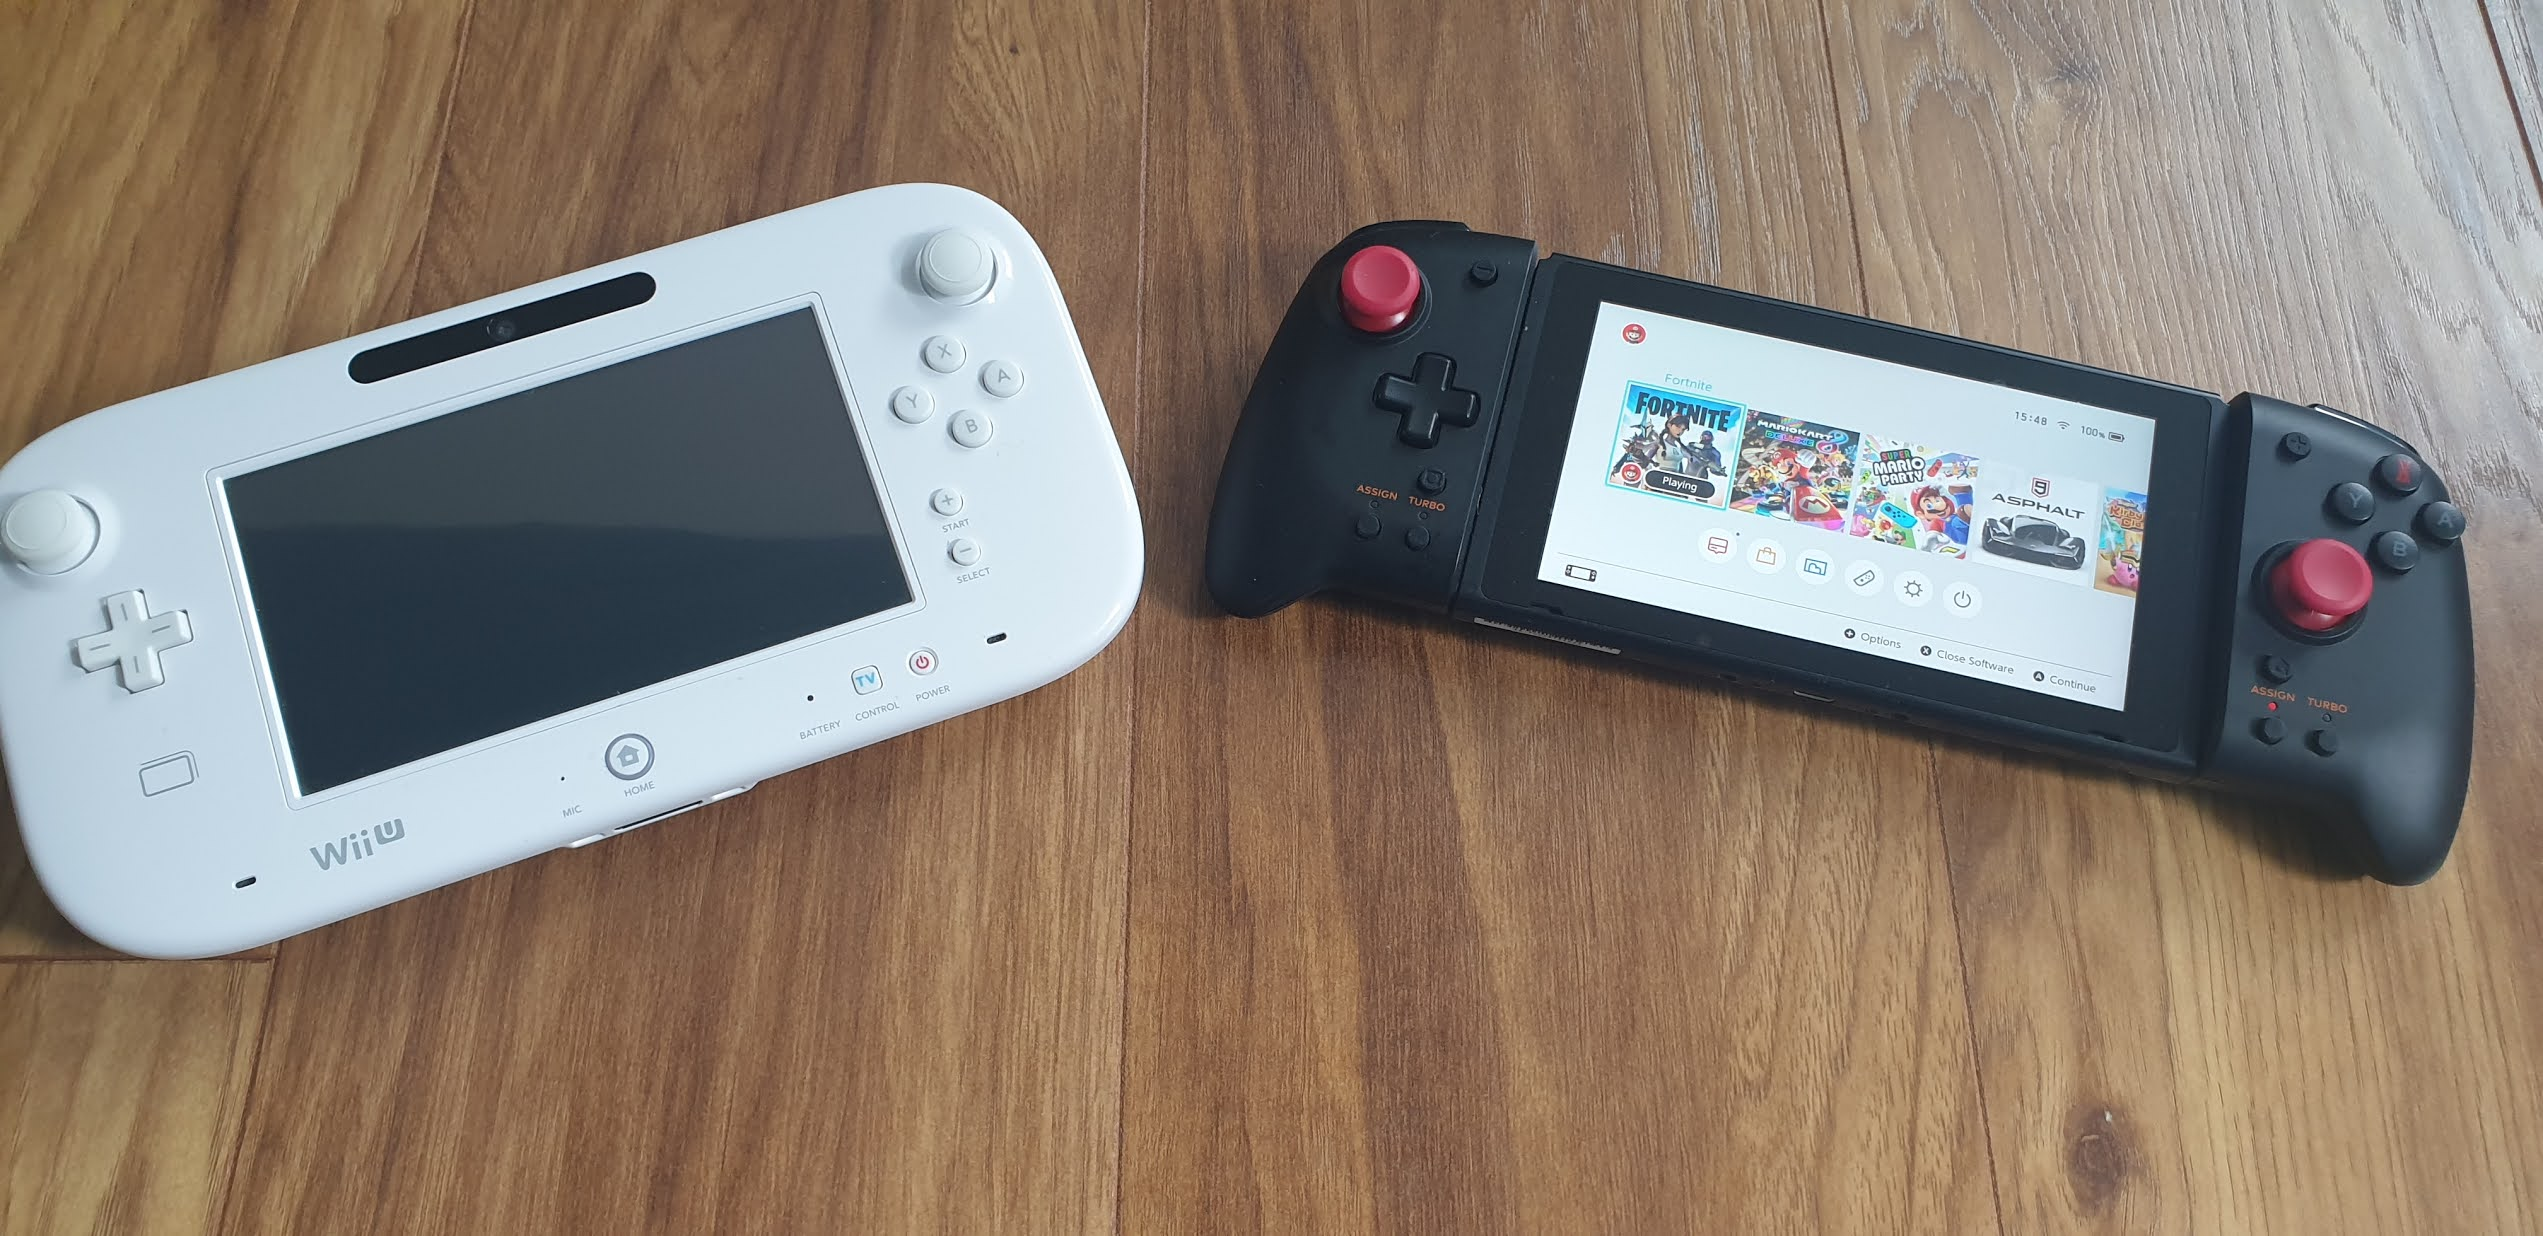 wii u and switch